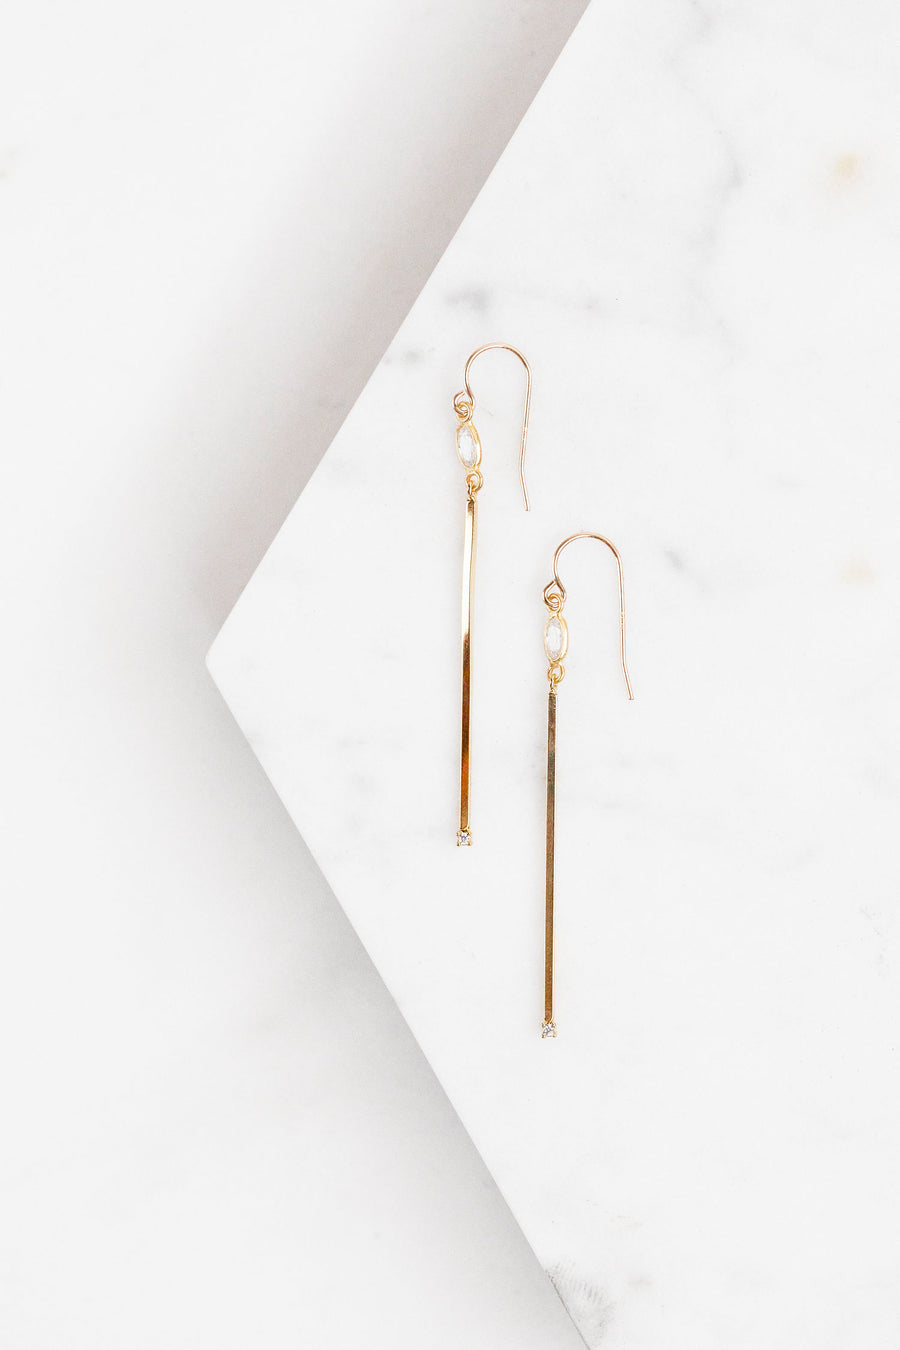 Find the perfect pair of earrings you're looking for from Charme Silkiner! These gold and CZ bezel drop earrings are stunning with their narrow bar and CZ accents. Perfect to dress or dress down any outfit the Vanna Earrings are the perfect must have for everyone!